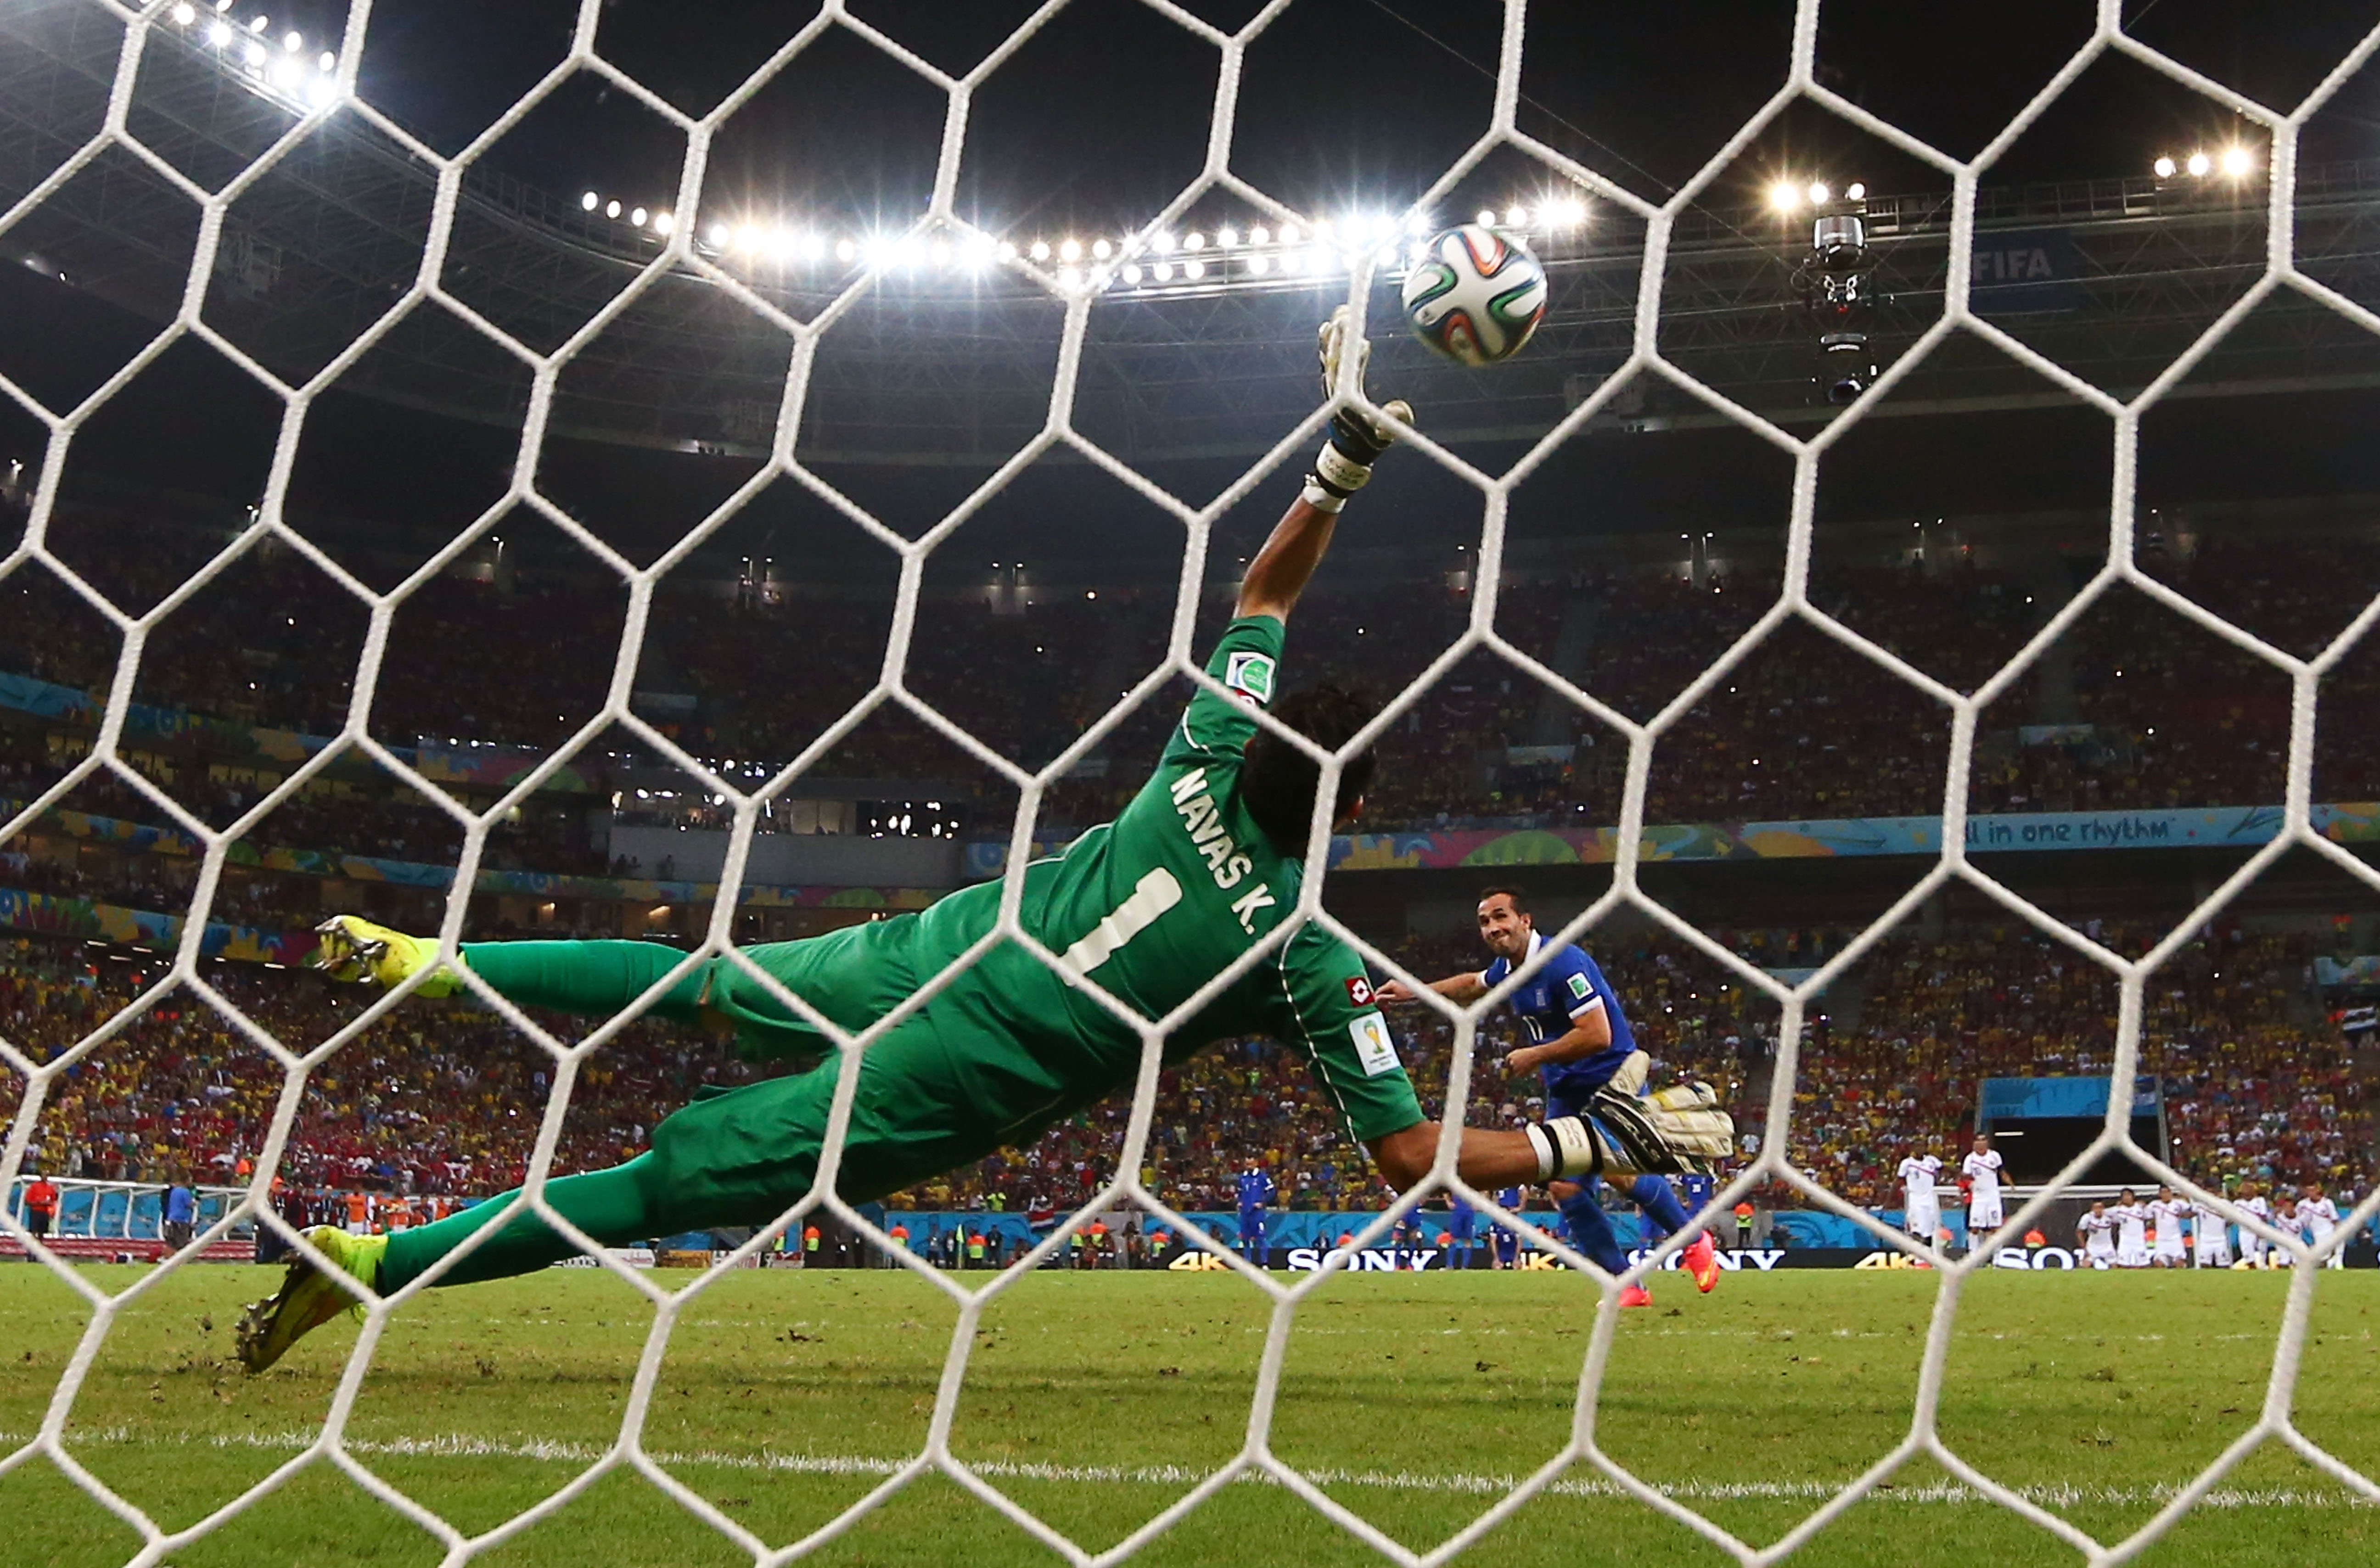 Theofanis Gekas of Greece hits the post during a shootout in the match between Costa Rica and Greece at Arena Pernambuco on June 29, 2014 in Recife, Brazil.